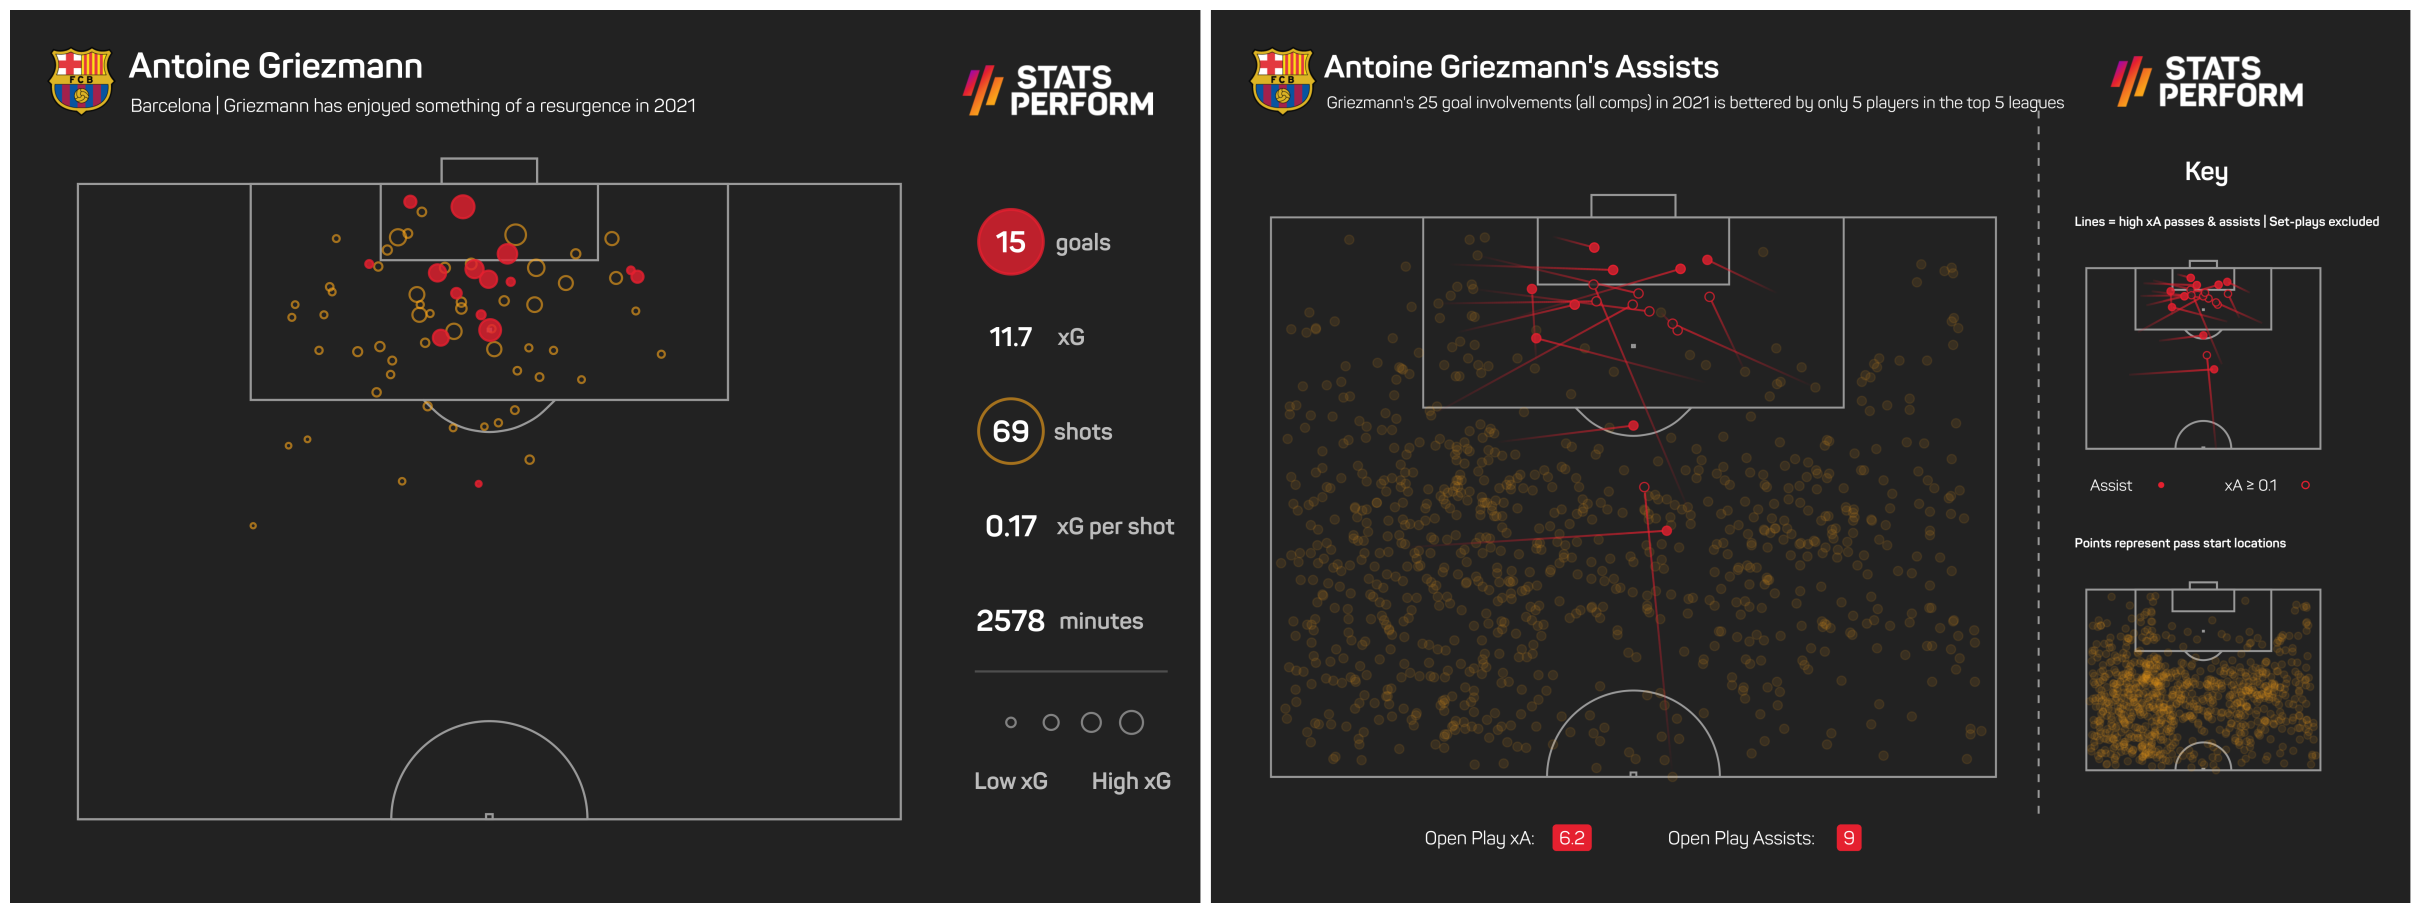 Antoine Griezmann has enjoyed something of a resurgence in 2021